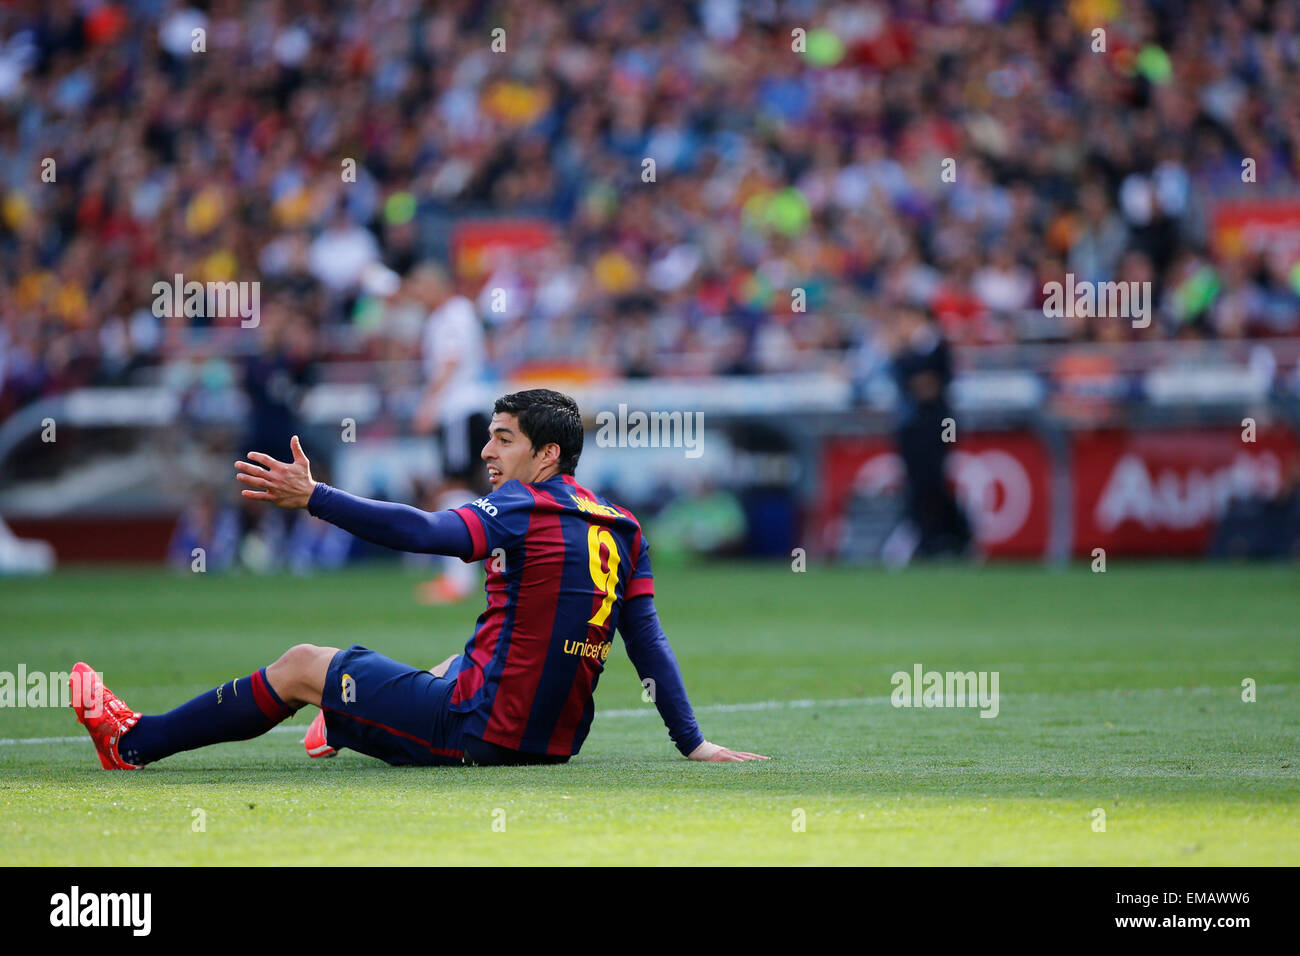 Barcelona, Spain. 18th Apr, 2015. Barcelona's Luis Suarez gestures during the Spanish first division football - Stock Image